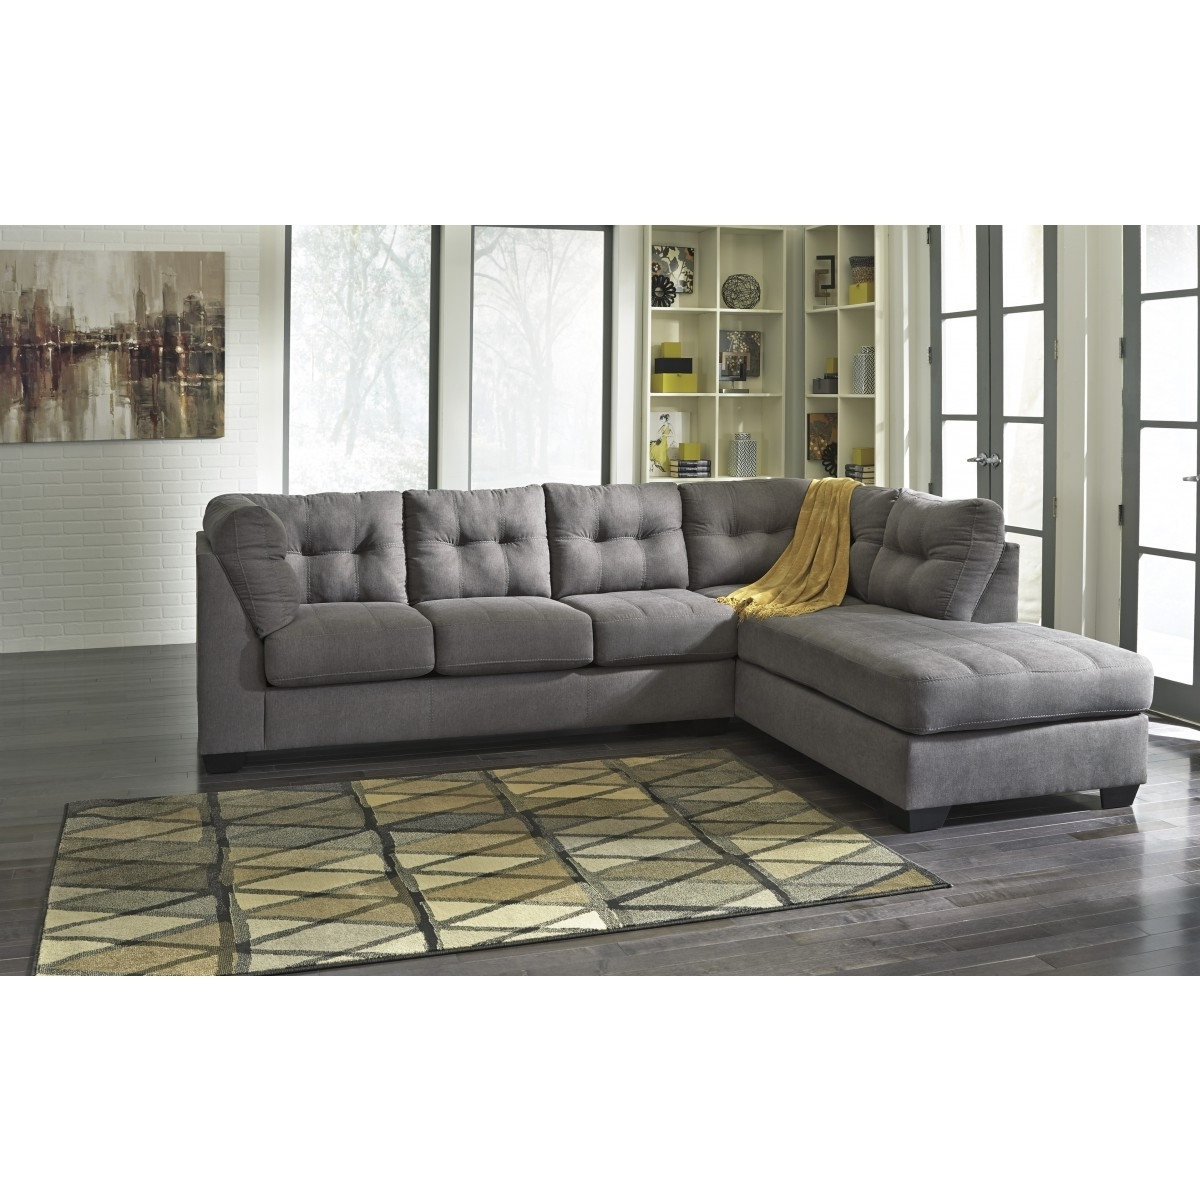 Newest Maier Charcoal Corner Chaise Sectional For Sectional Chaises (View 10 of 15)